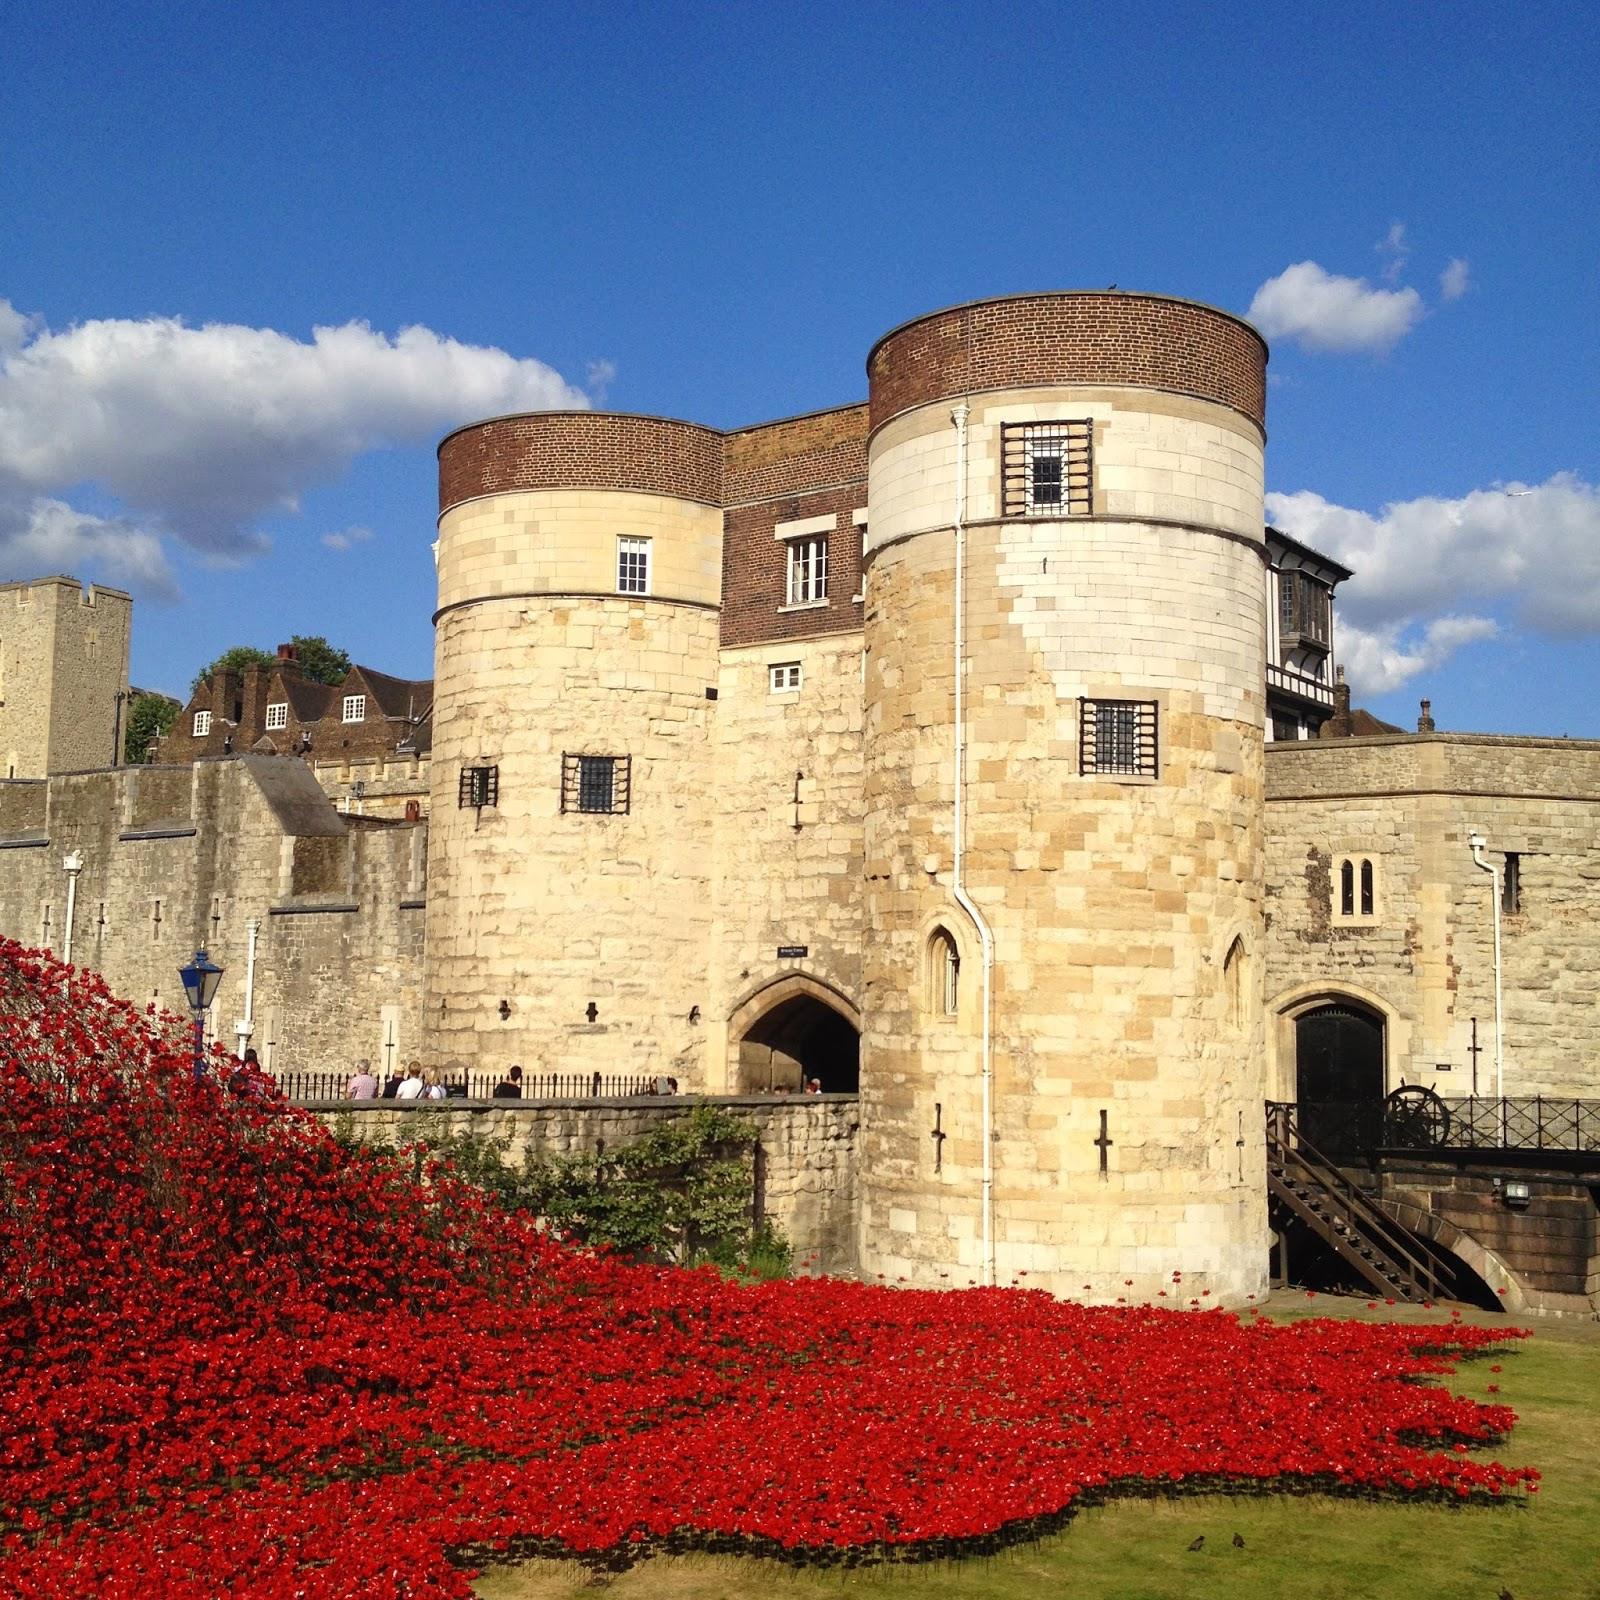 Poppies at the Tower of London (photo credit: http://researchandramblings.blogspot.com/)